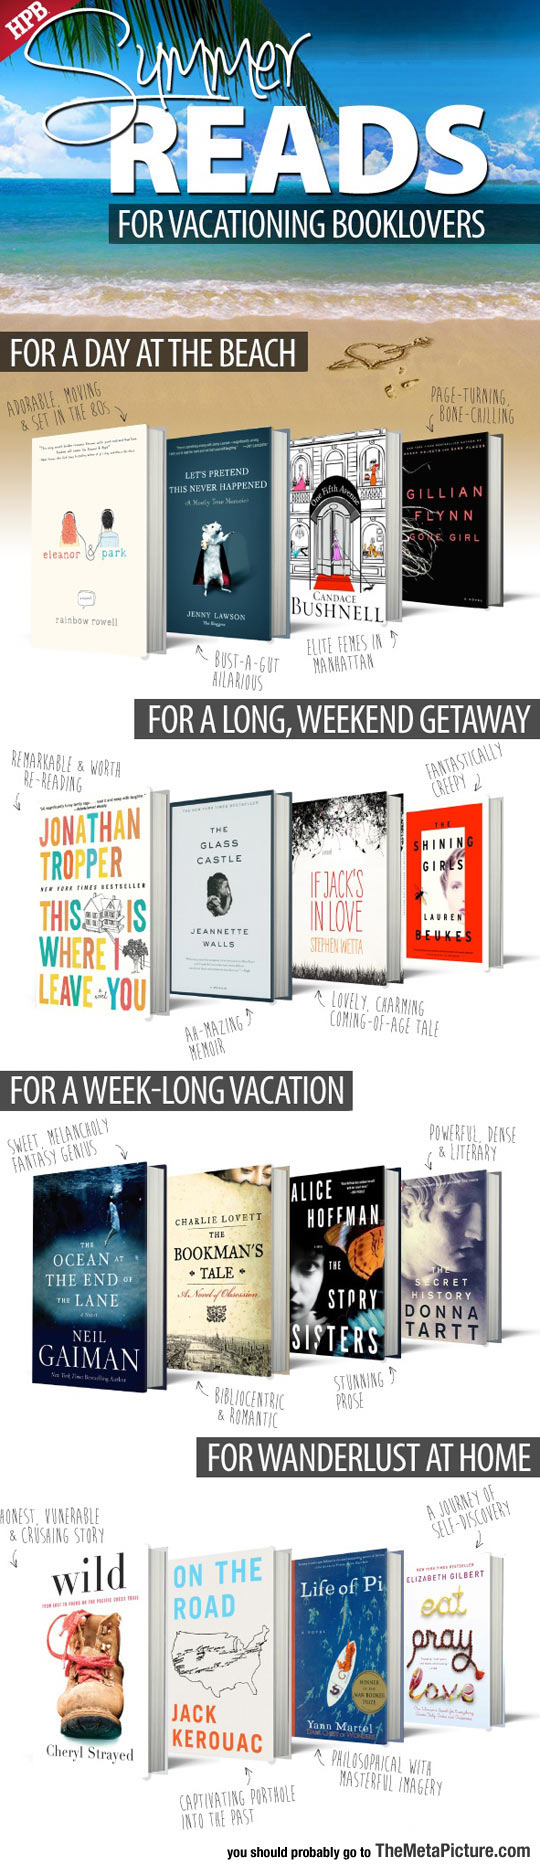 cool-summer-read-books-recommendation